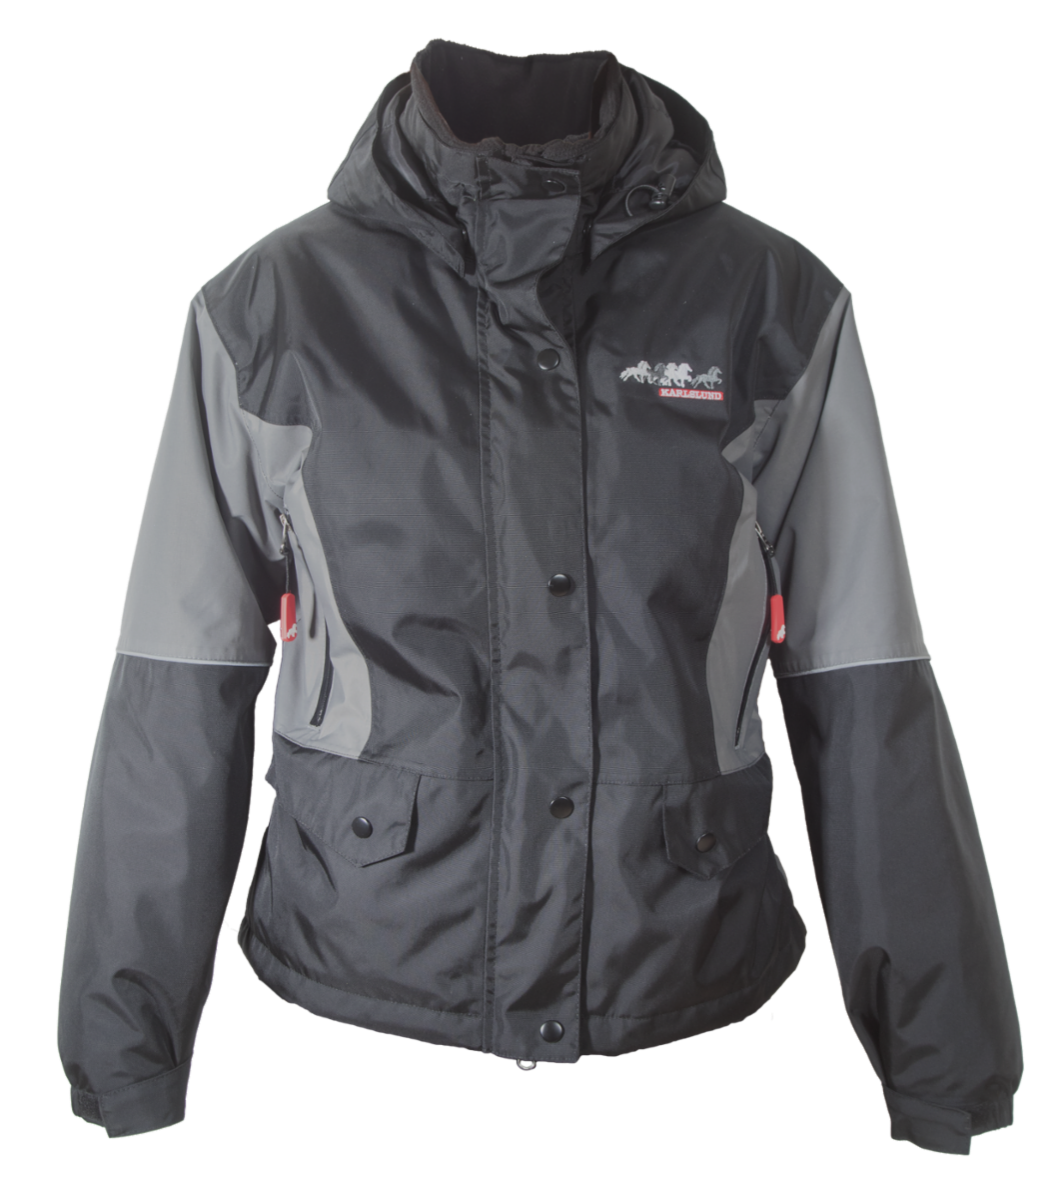 KARLSLUND winter riding jacket k513